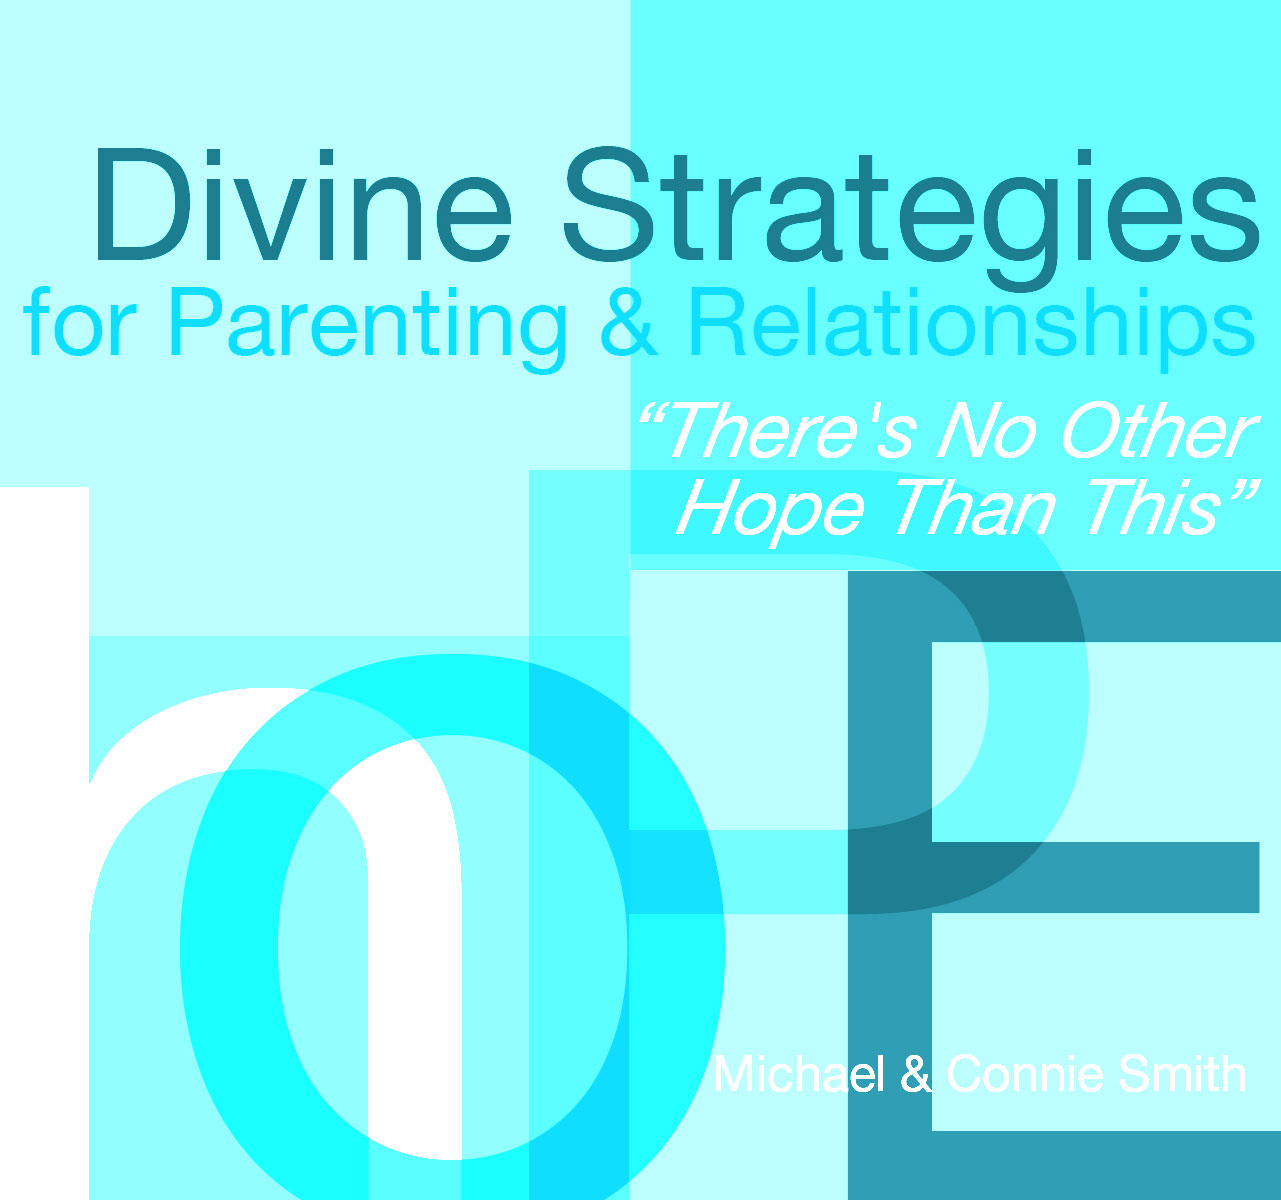 Divine Strategies for Parenting and Relationships